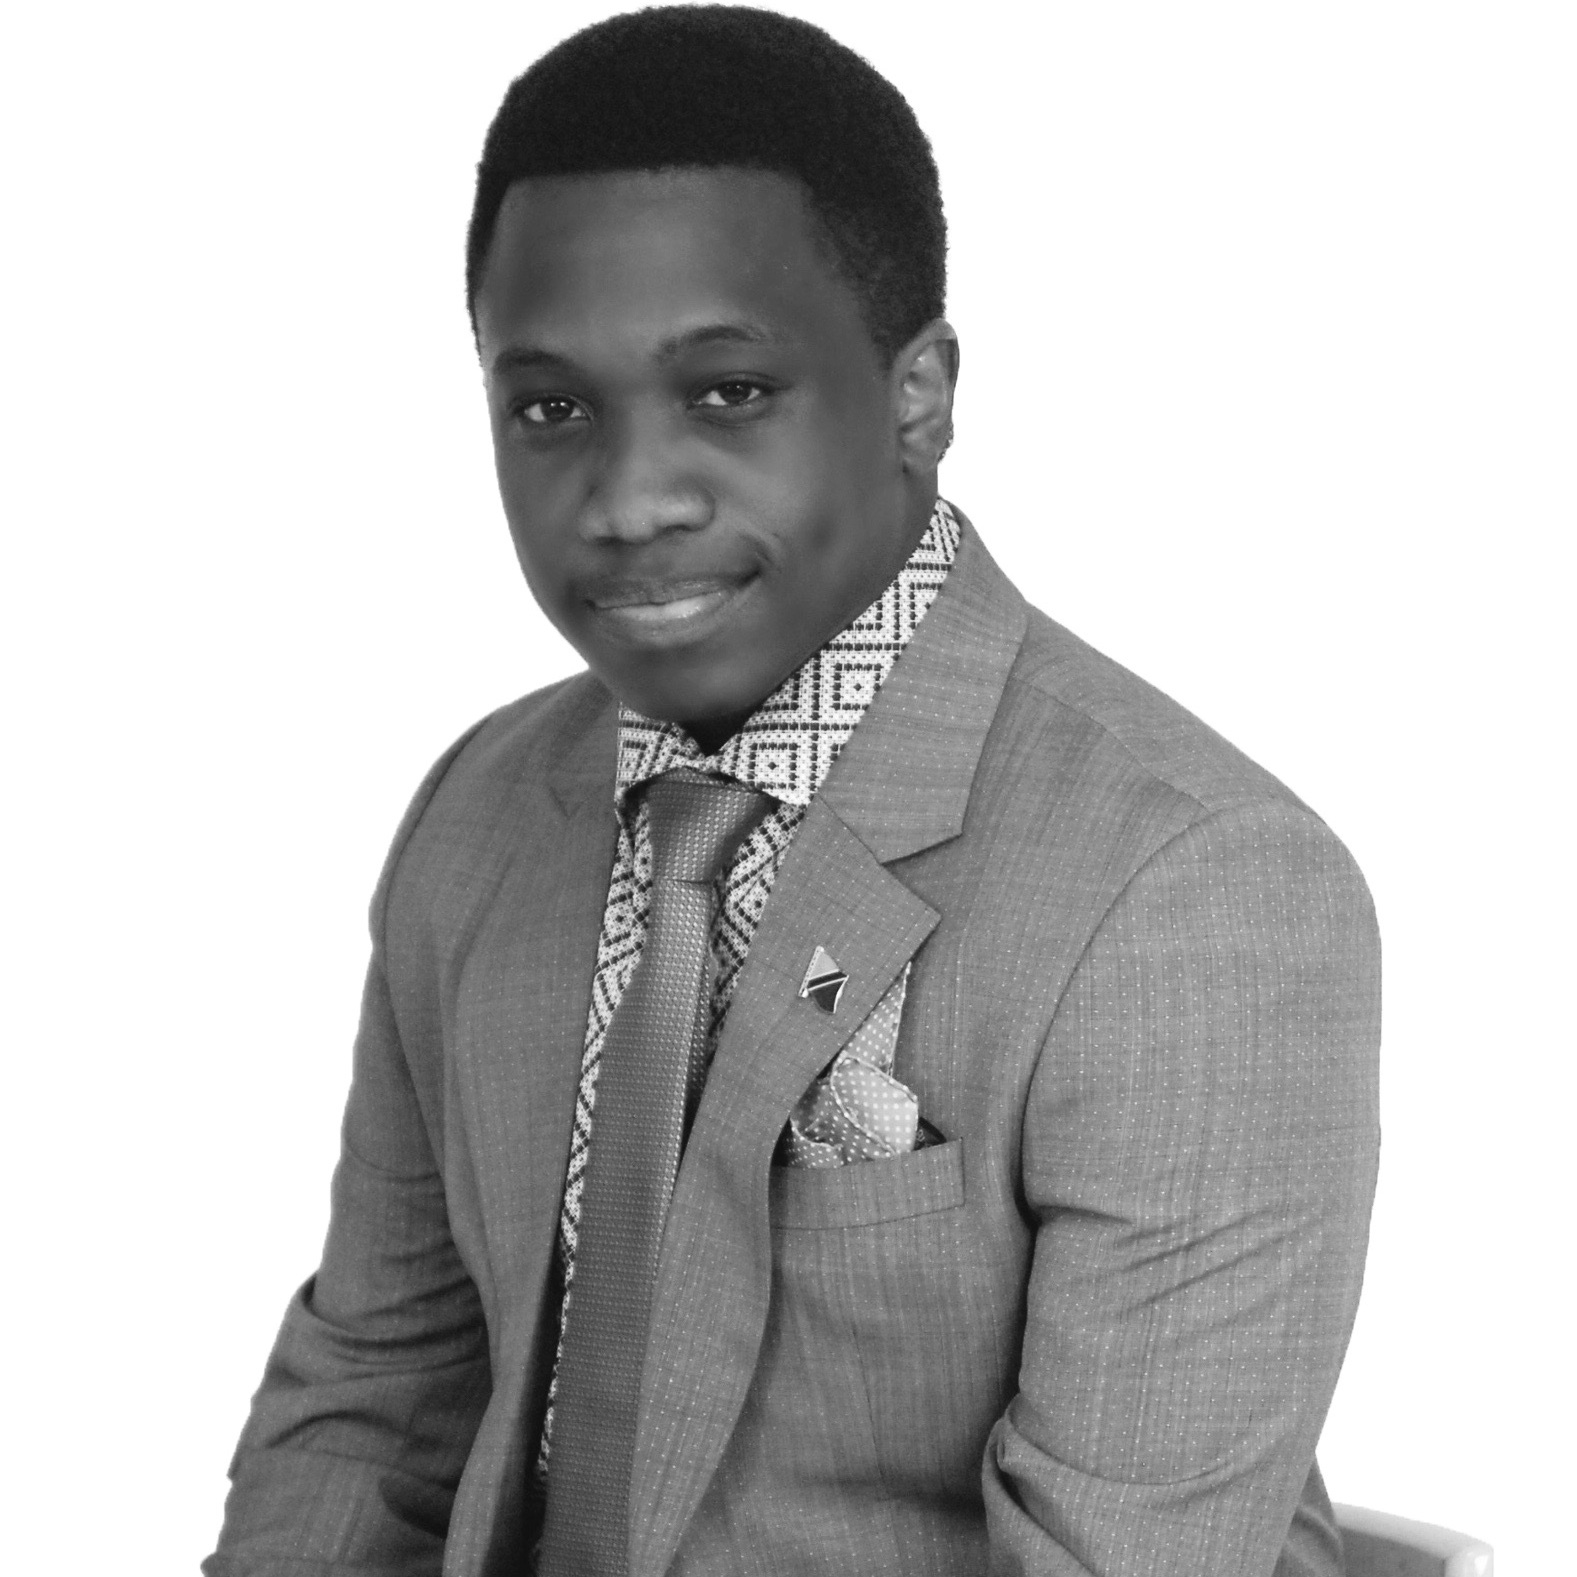 Daniel   Daniel is a Management Trainee at VivaLegacy as part of our Mentorship Programme. He holds a Degree in International Business from the University of Kent in the United Kingdom. He is currently pursuing a Masters Degree in Procurement and Logistic at Warwick University in the United Kingdom.   daniel@vivalegacy.com